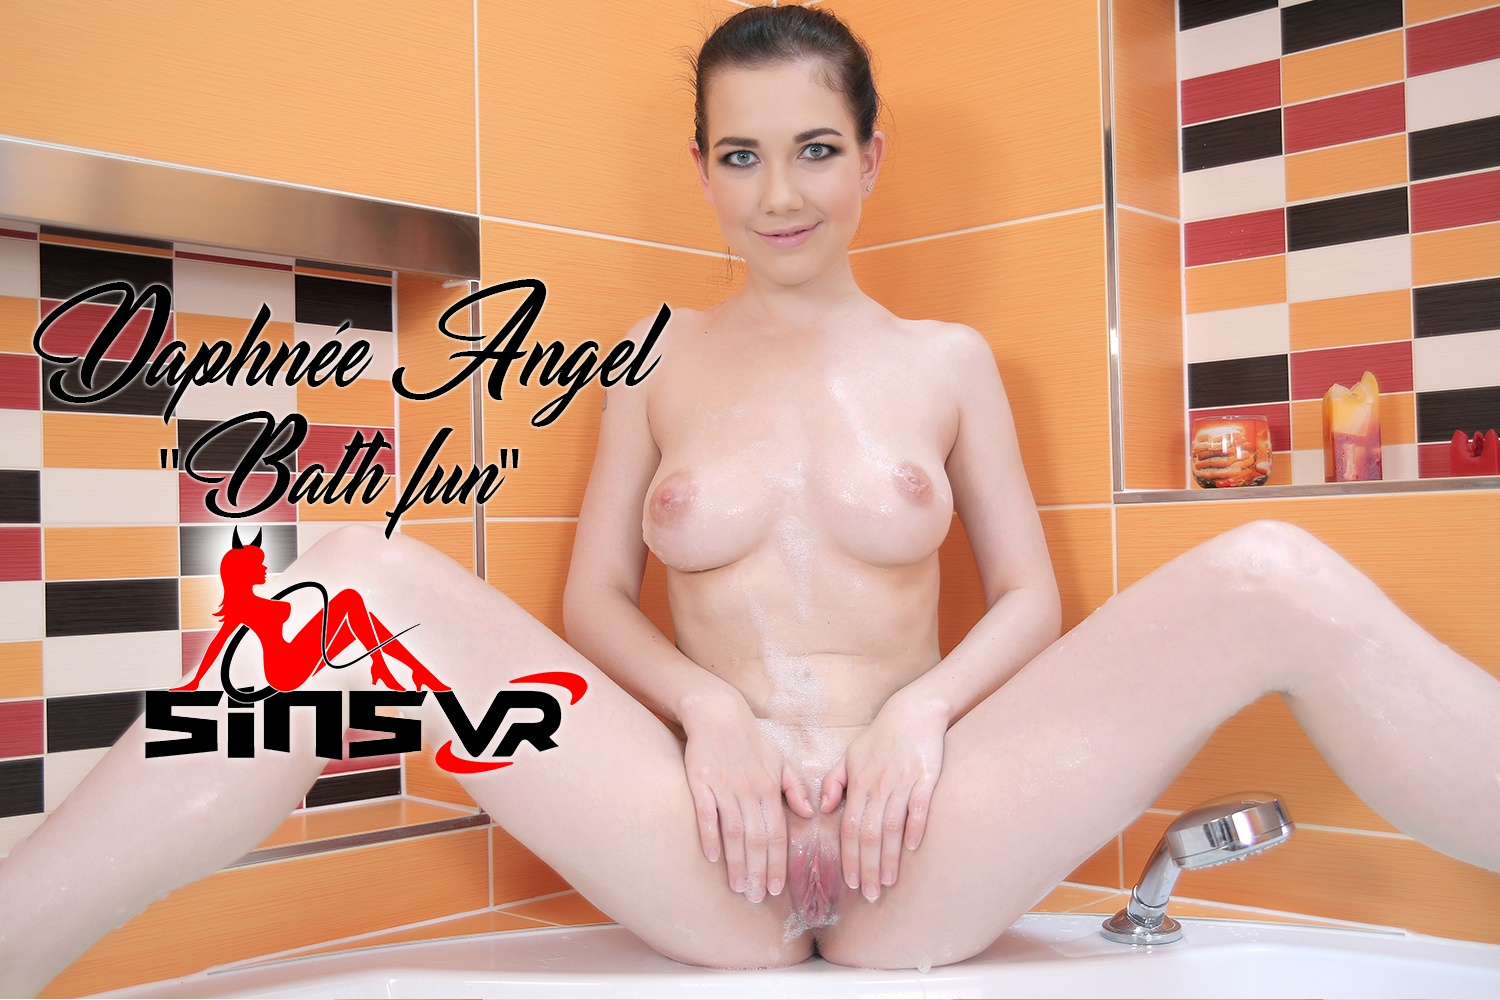 Daphnee Angel - Bath Fun; Busty Brunette Solo Daphne Angel